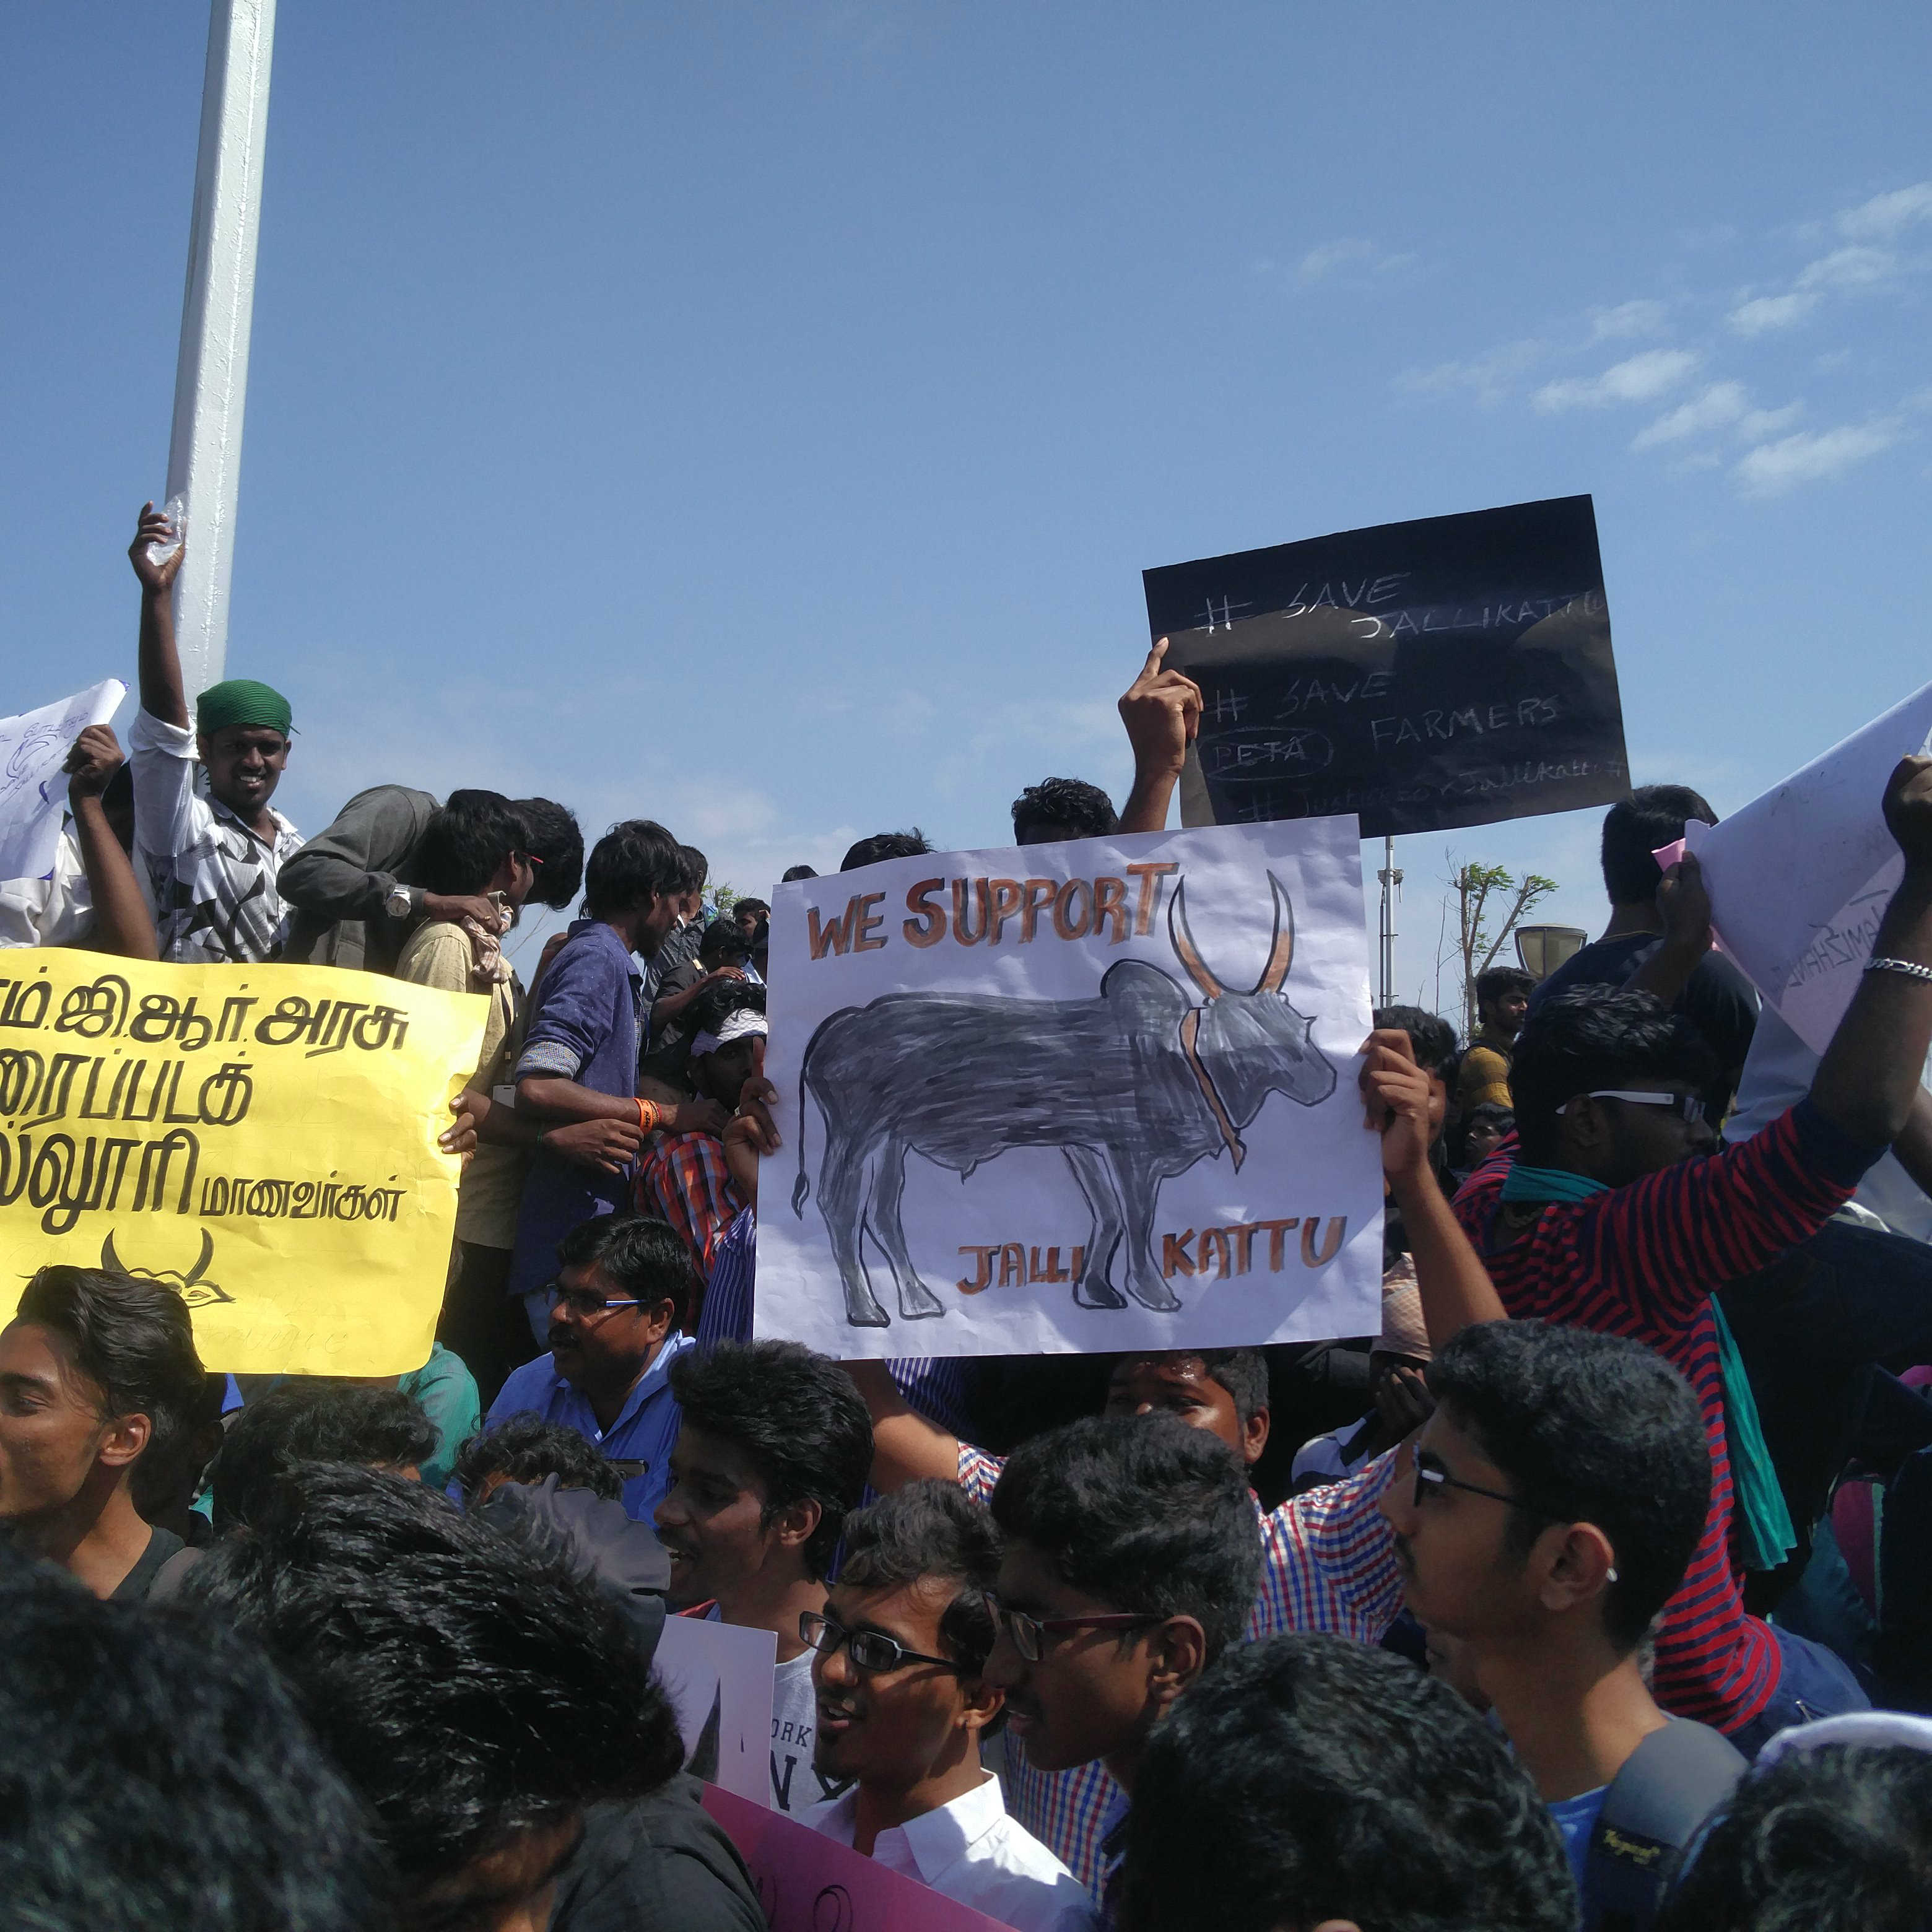 College students gathered at the protest.